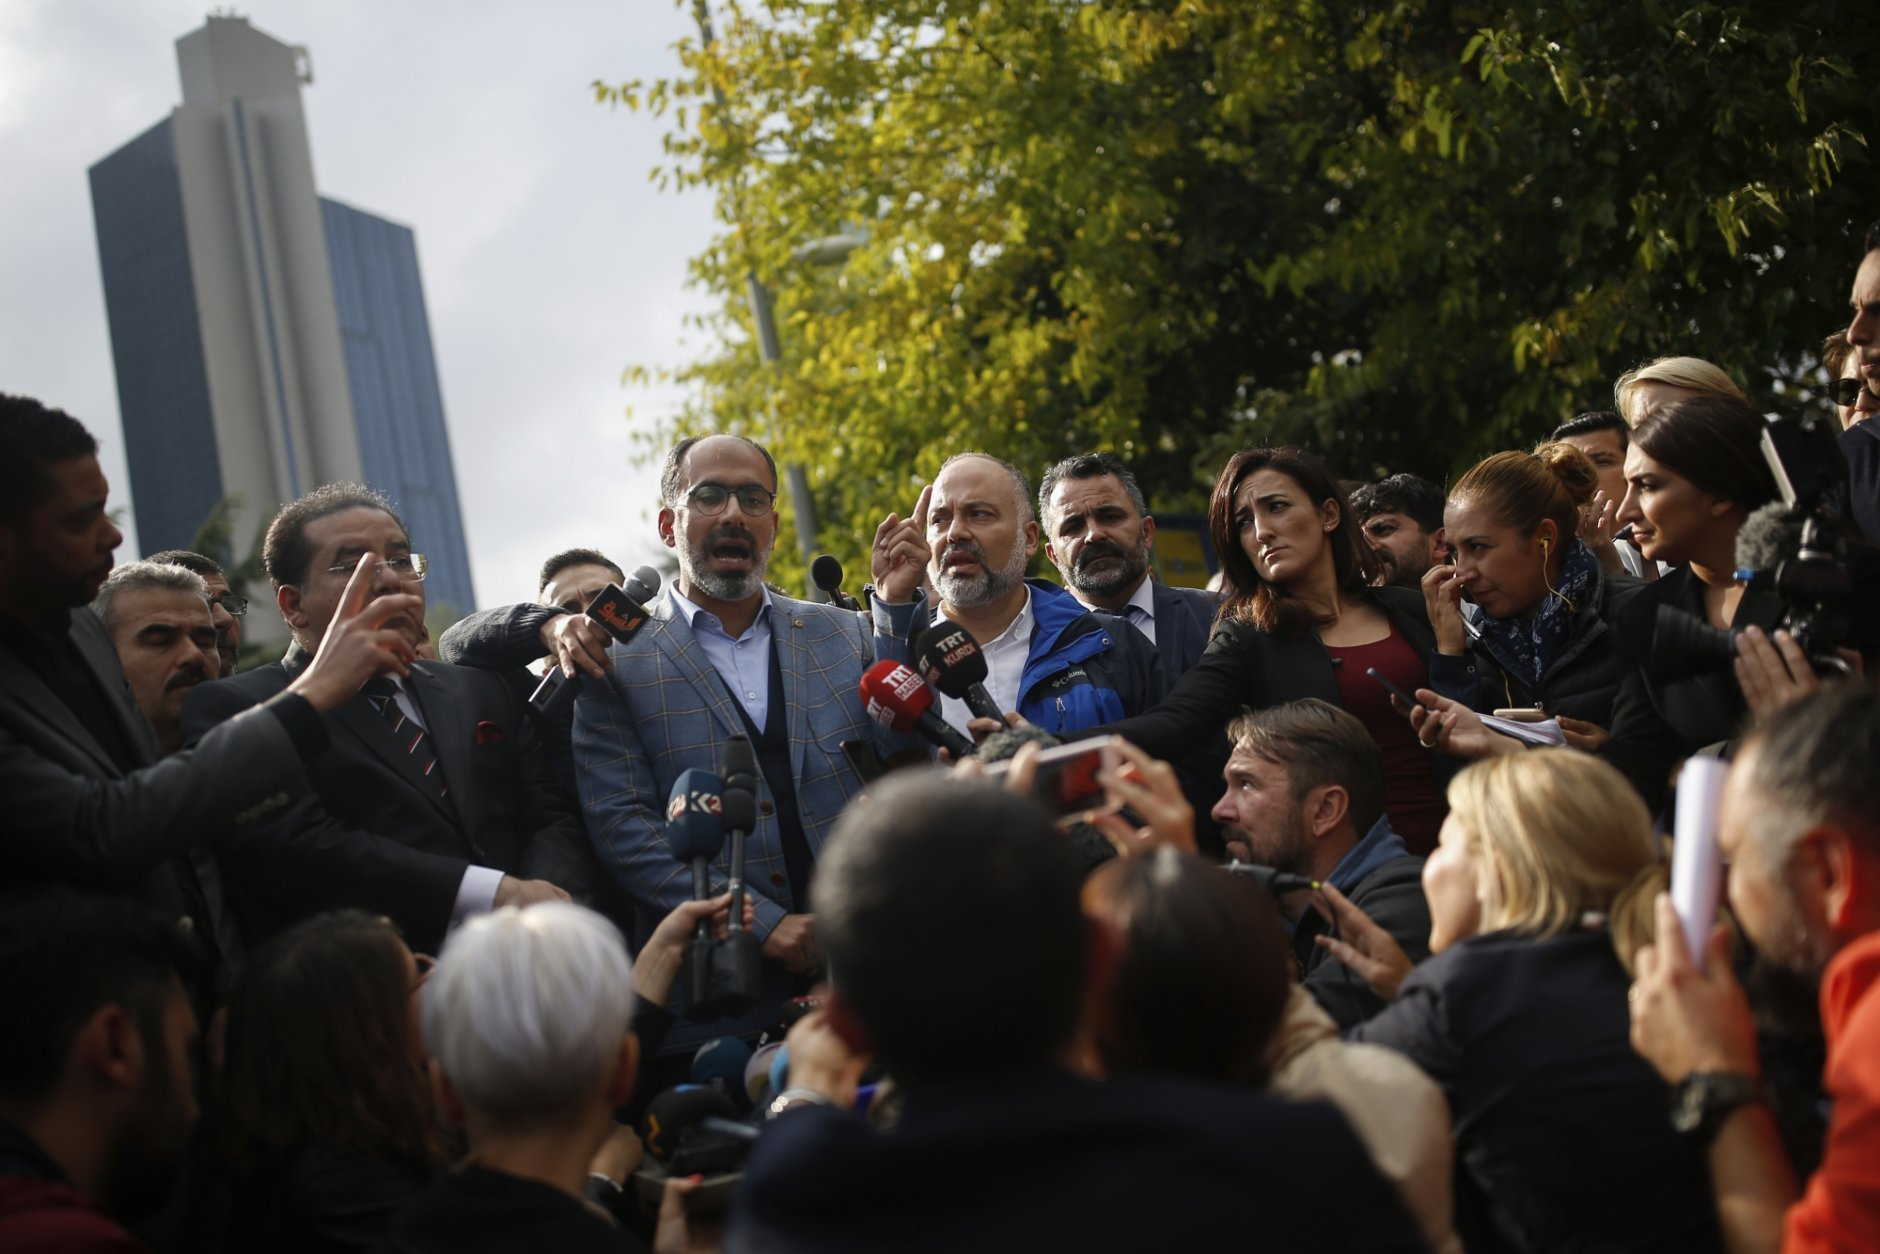 """Turan Kislakci, head of the Turkish-Arab media association and friend of Saudi journalist Jamal Khashoggi talks to the media, near Saudi Arabia's consulate in Istanbul, Saturday, Oct. 20, 2018. Turkey will """"never allow a cover-up"""" of the killing of Saudi journalist Jamal Khashoggi in Saudi Arabia's consulate in Istanbul, a senior official in Turkey's ruling party said Saturday after Saudi Arabia announced hours earlier that the writer died during a """"fistfight"""" in its consulate. (AP Photo/Emrah Gurel)"""